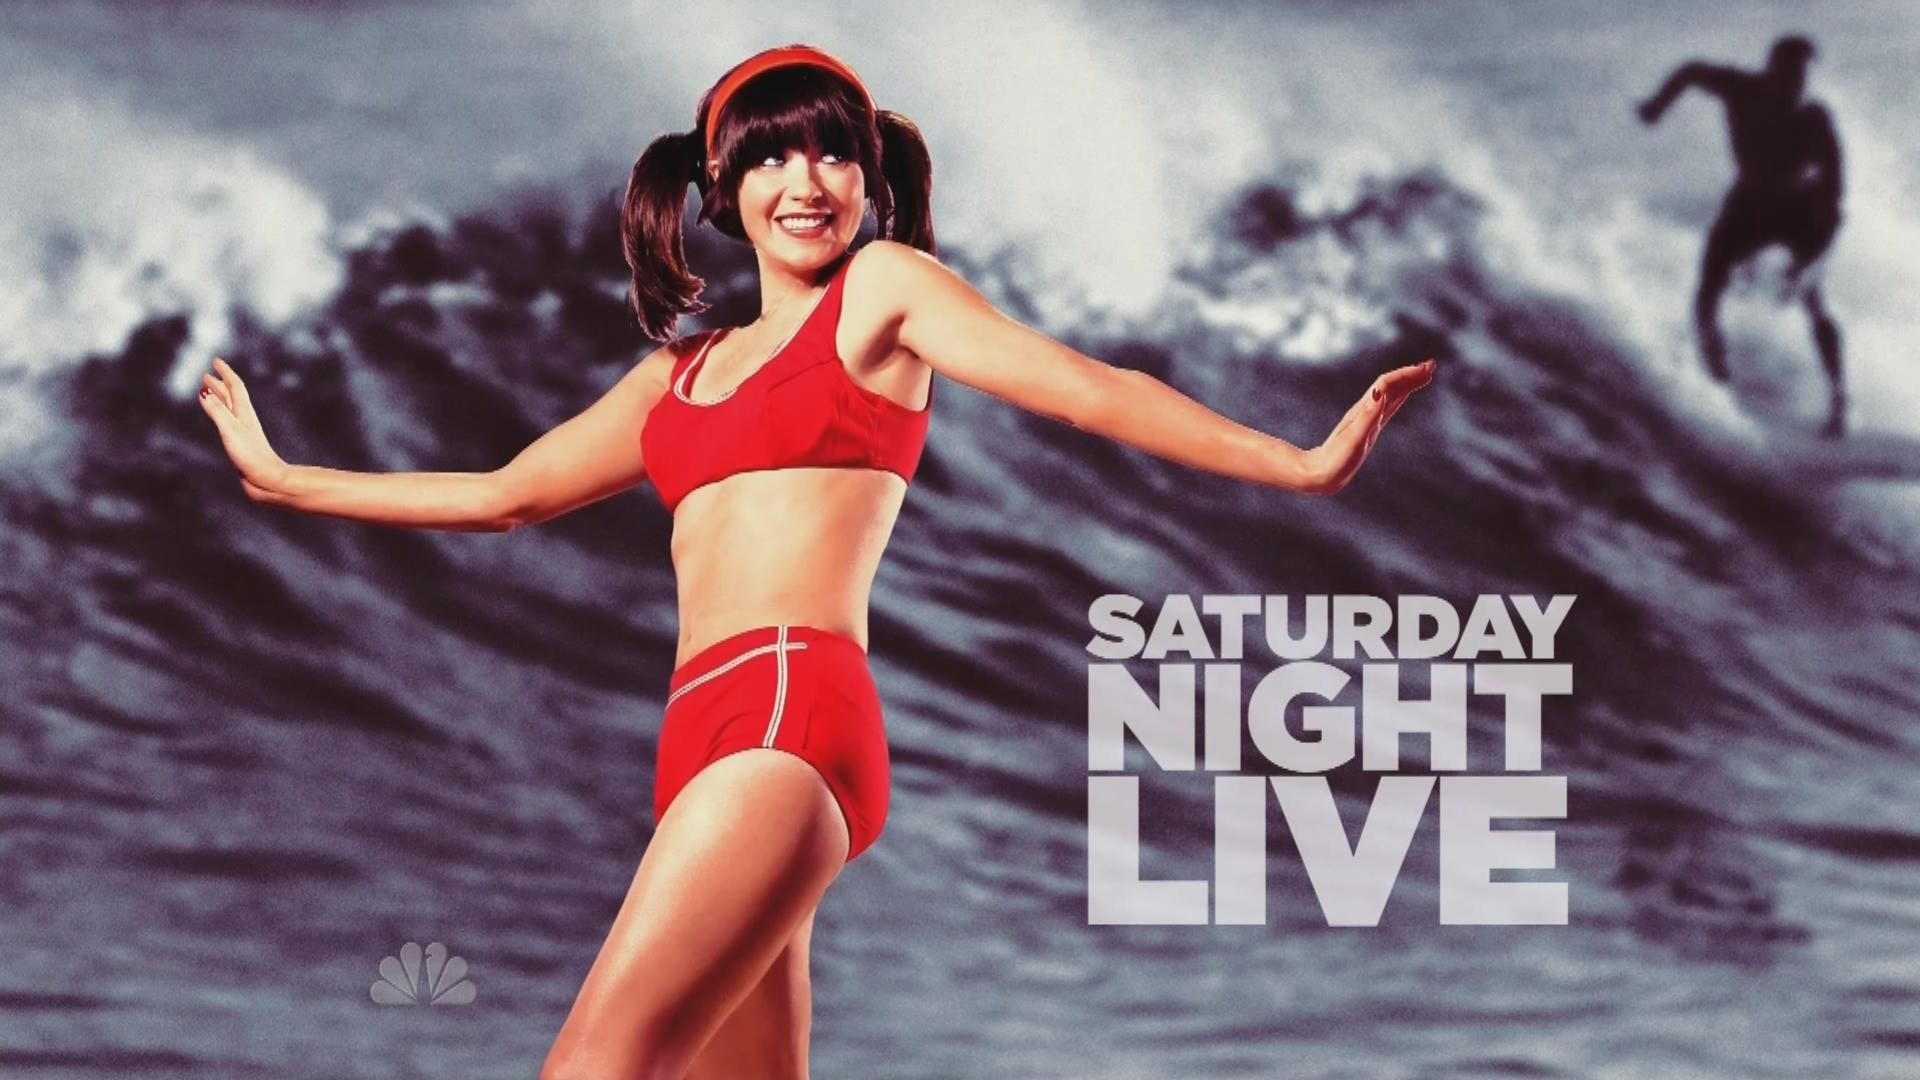 1920x1080 2017-03-24 - saturday night live images for desktop background, #1959850